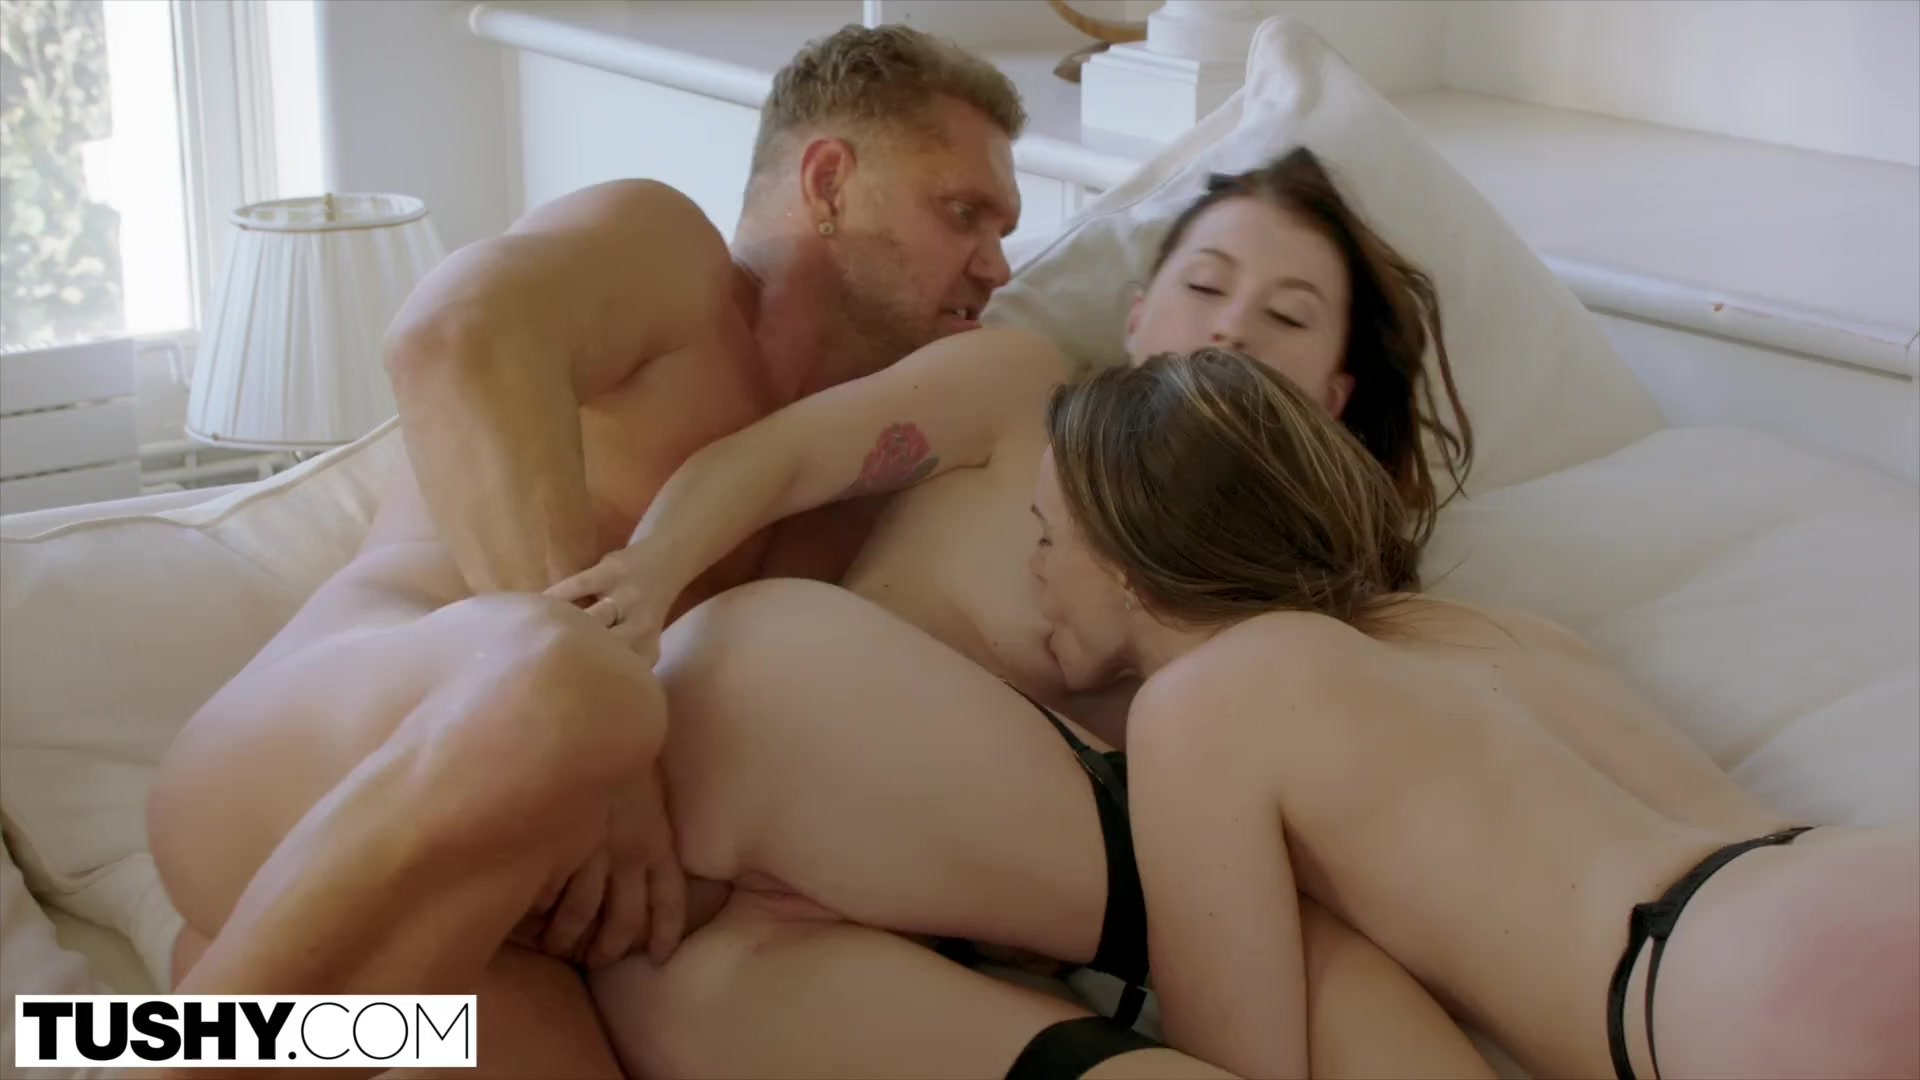 TUSHY Tori Black Intense Anal Threesome